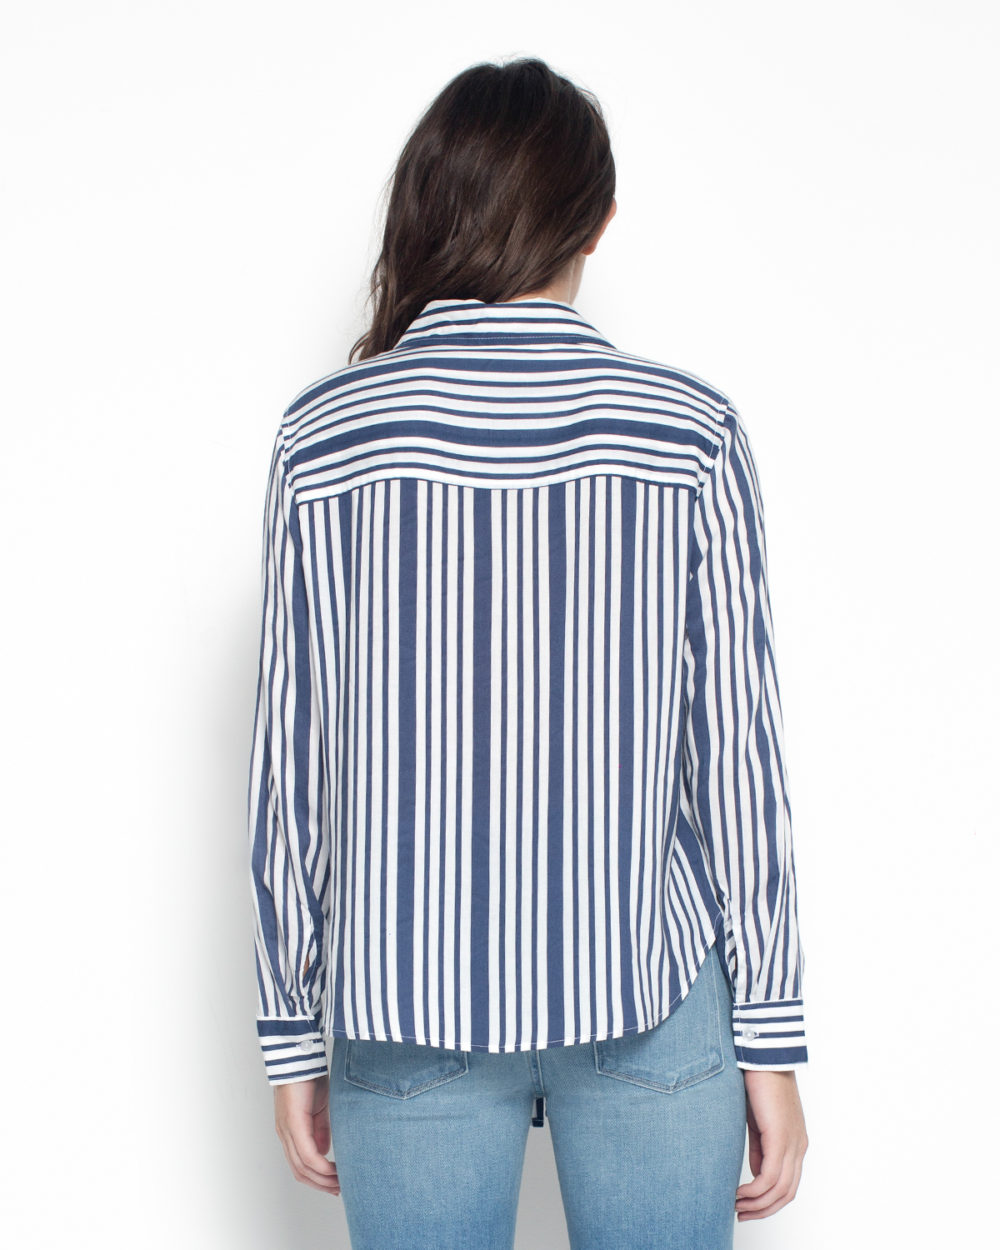 FRONT TIE BLOUSE IN NAVY/WHITE